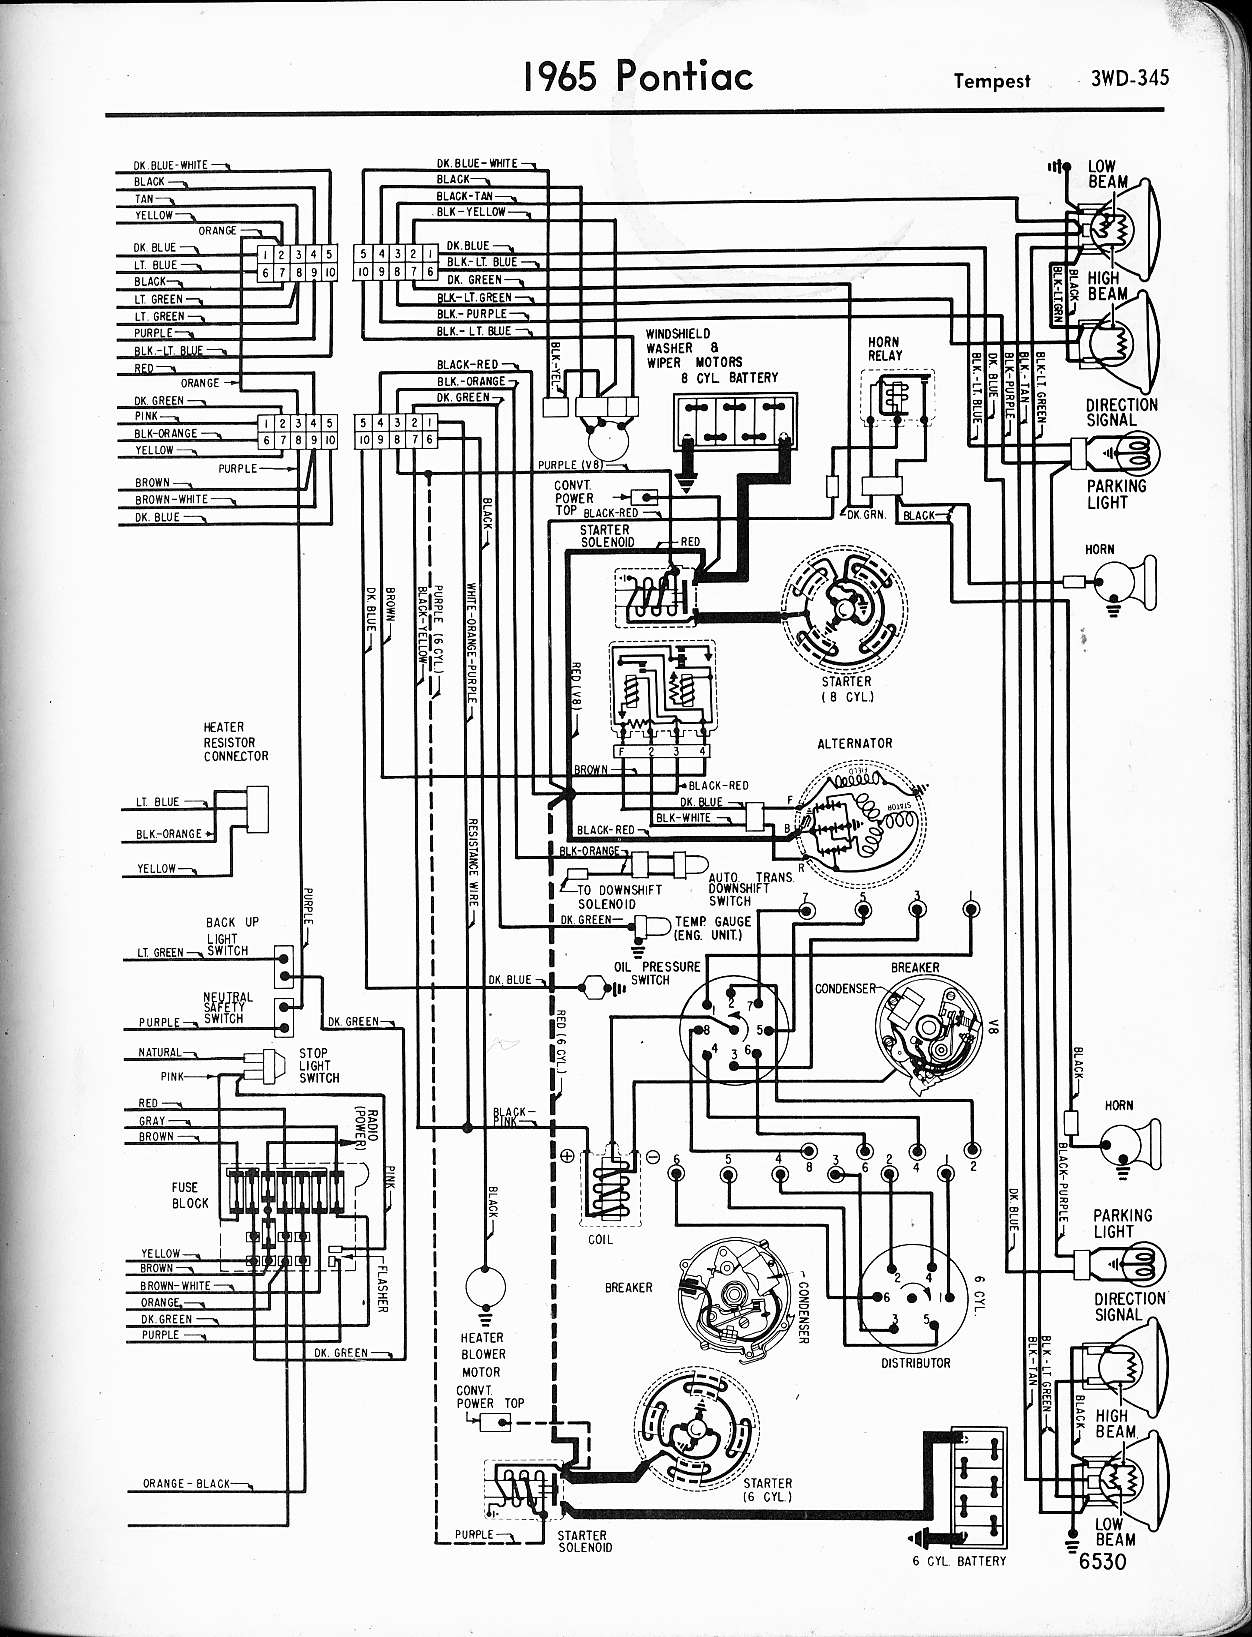 MWire5765 345 wallace racing wiring diagrams 69 camaro convertible top wiring diagram at gsmx.co